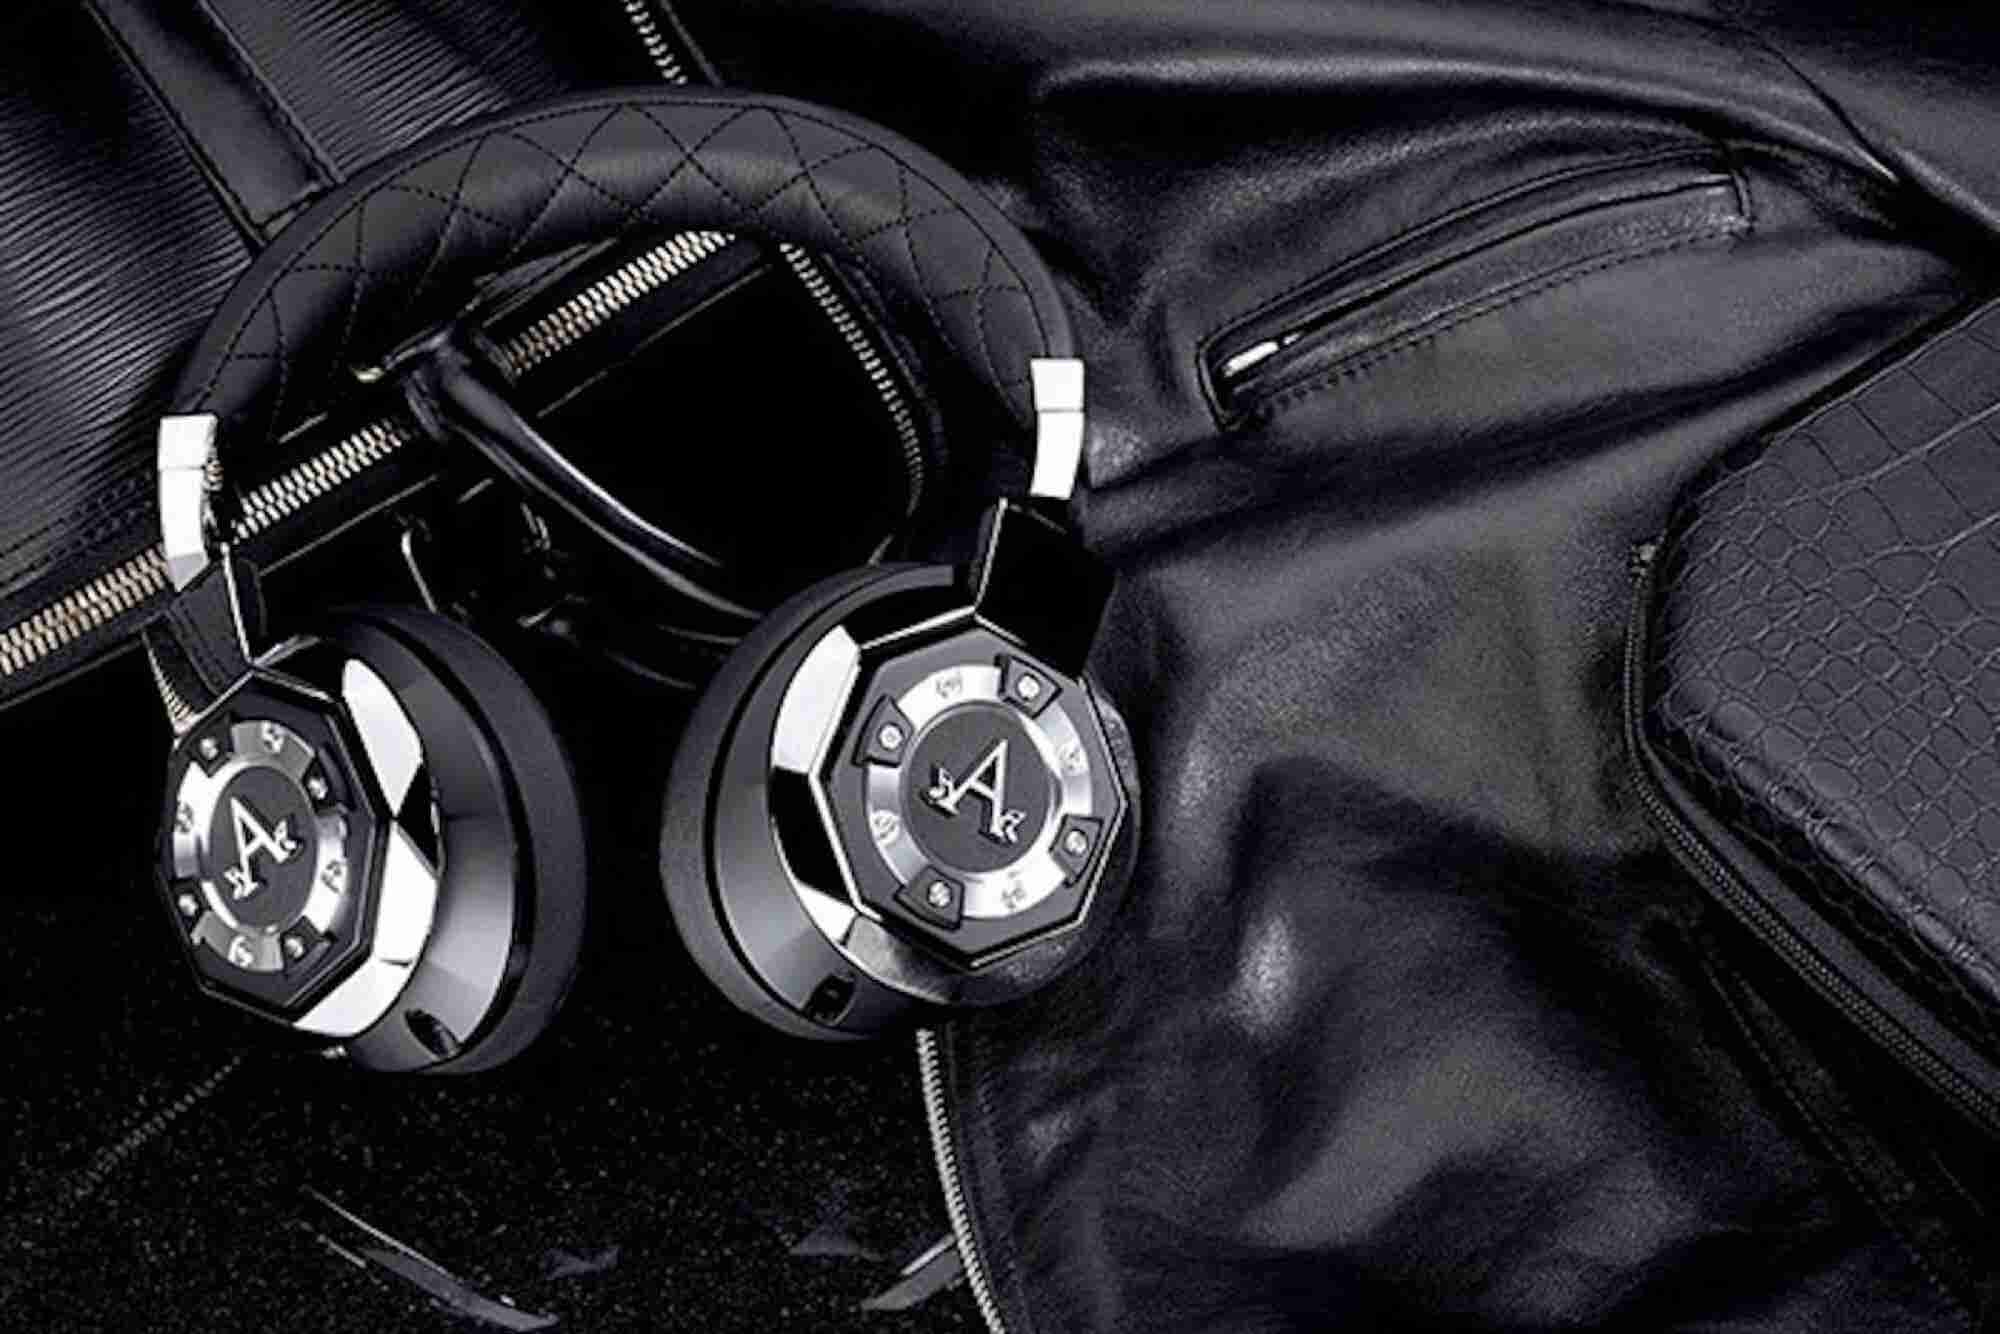 3 Reasons Why You Should Listen to Music at Work